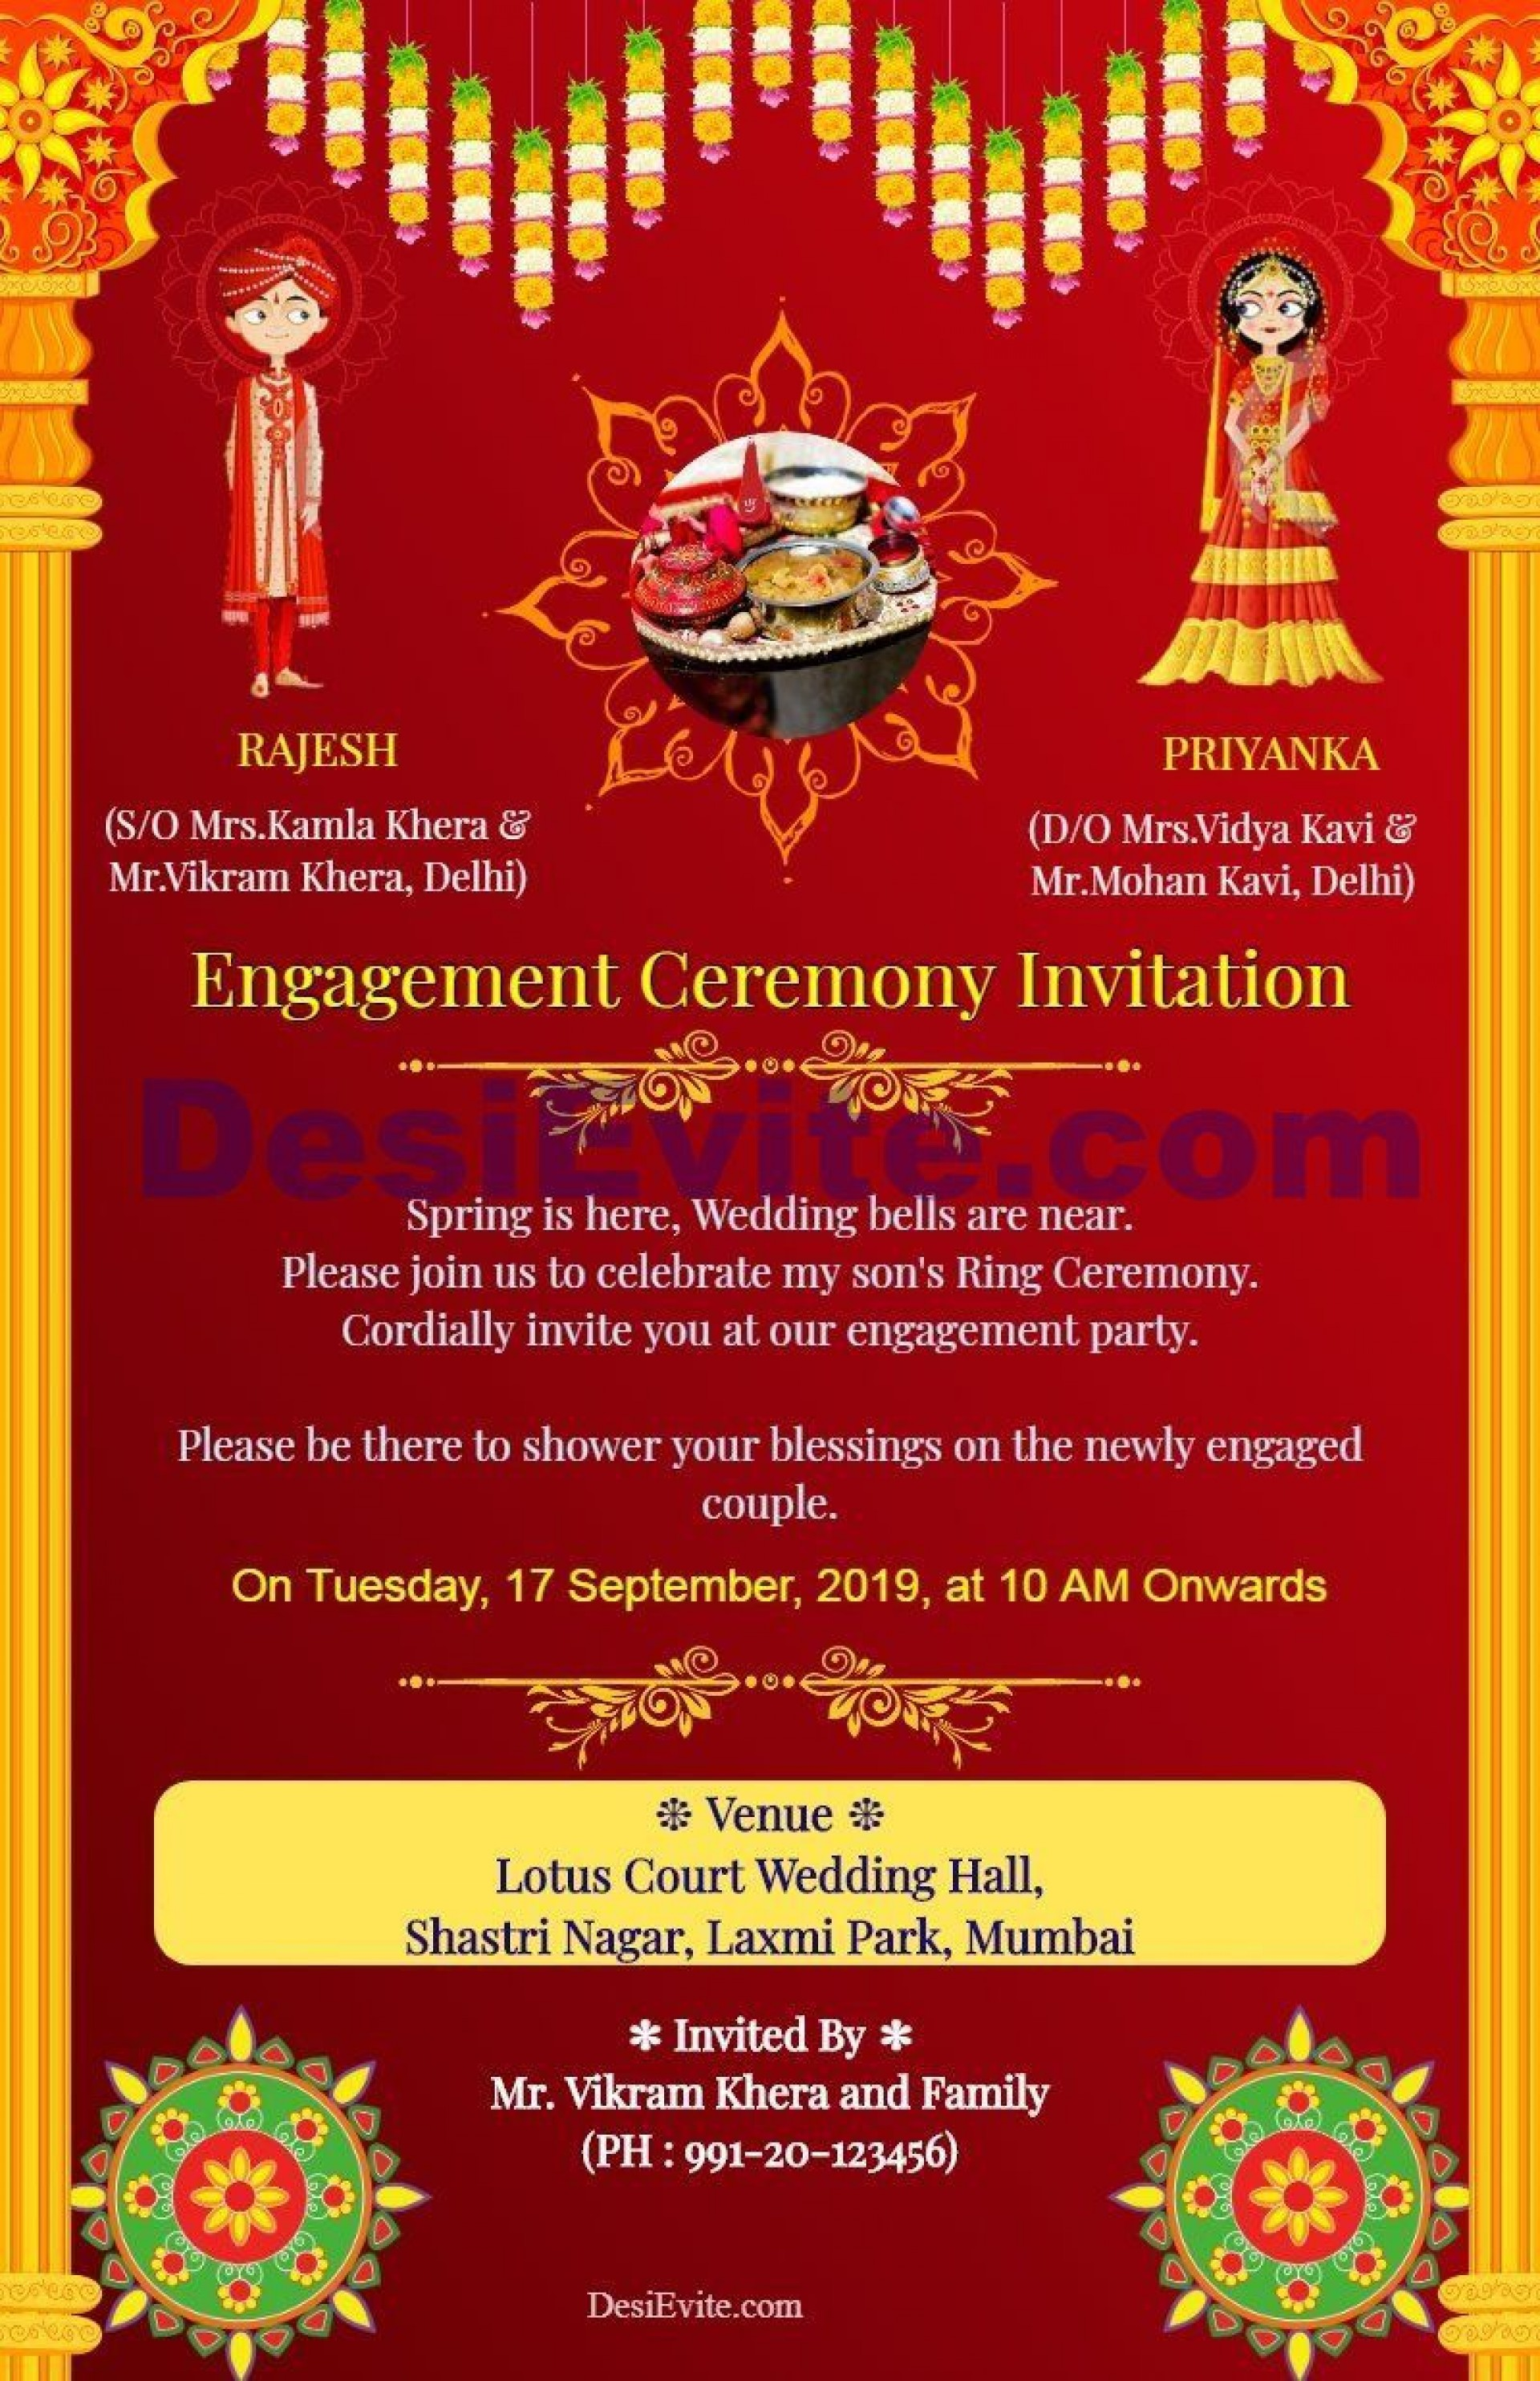 004 Rare Free Online Indian Invitation Template Picture  Templates Engagement Card Maker Wedding1920